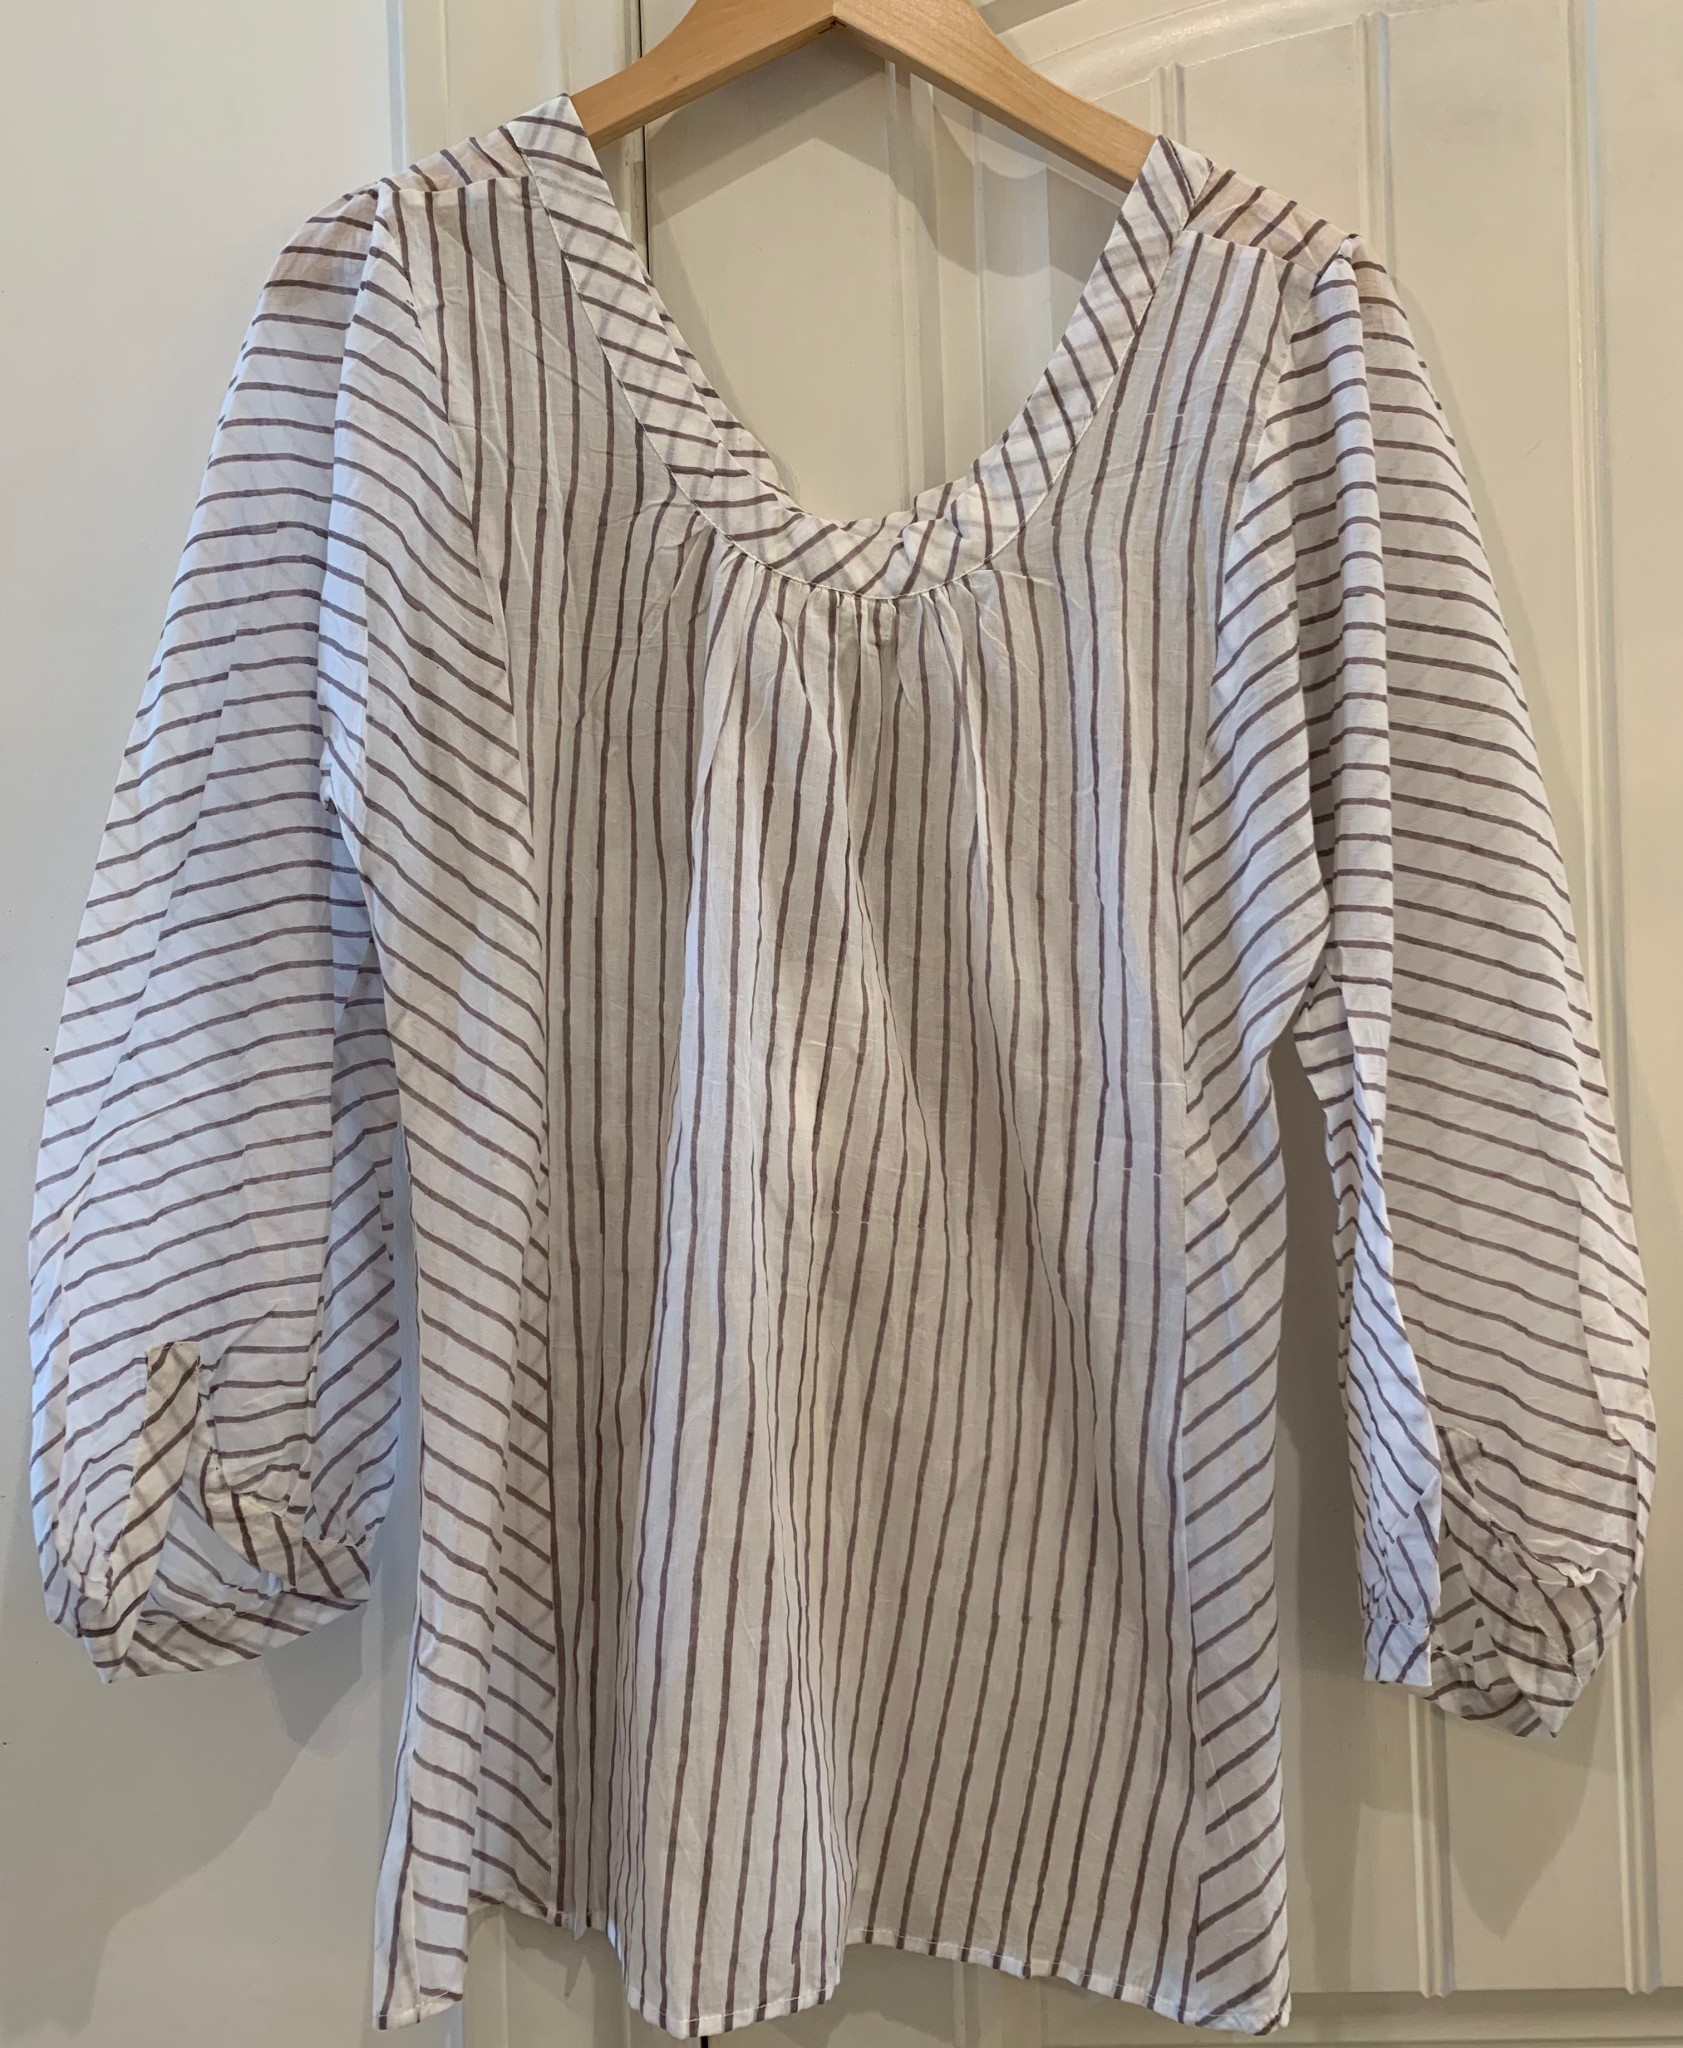 Kerry Cassill 3/4 Sleeve Blouse Med Grey Stripe M/L